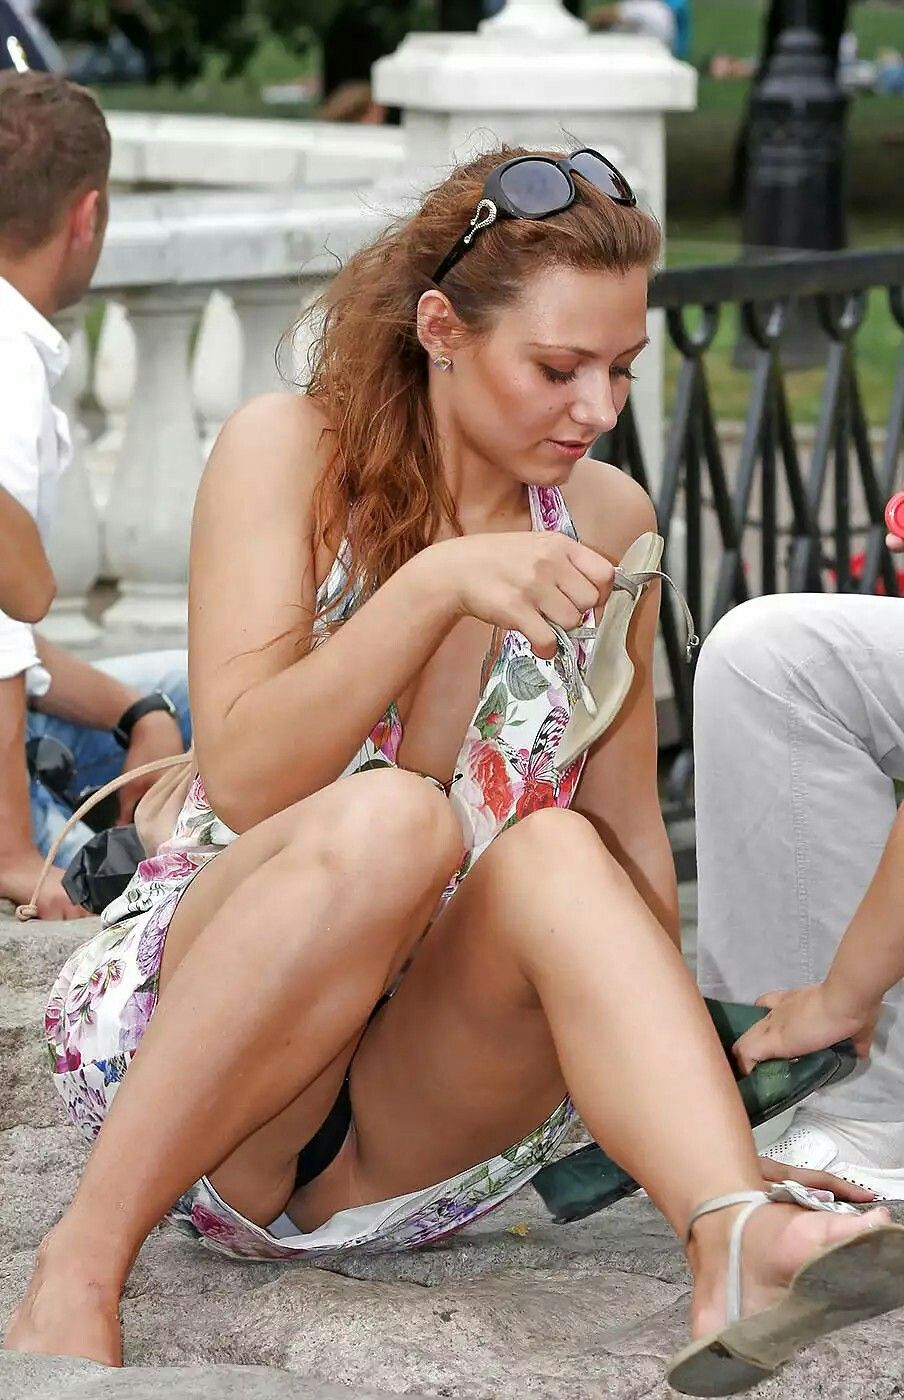 i love the amateur upskirt : saturday in the park(2) candid